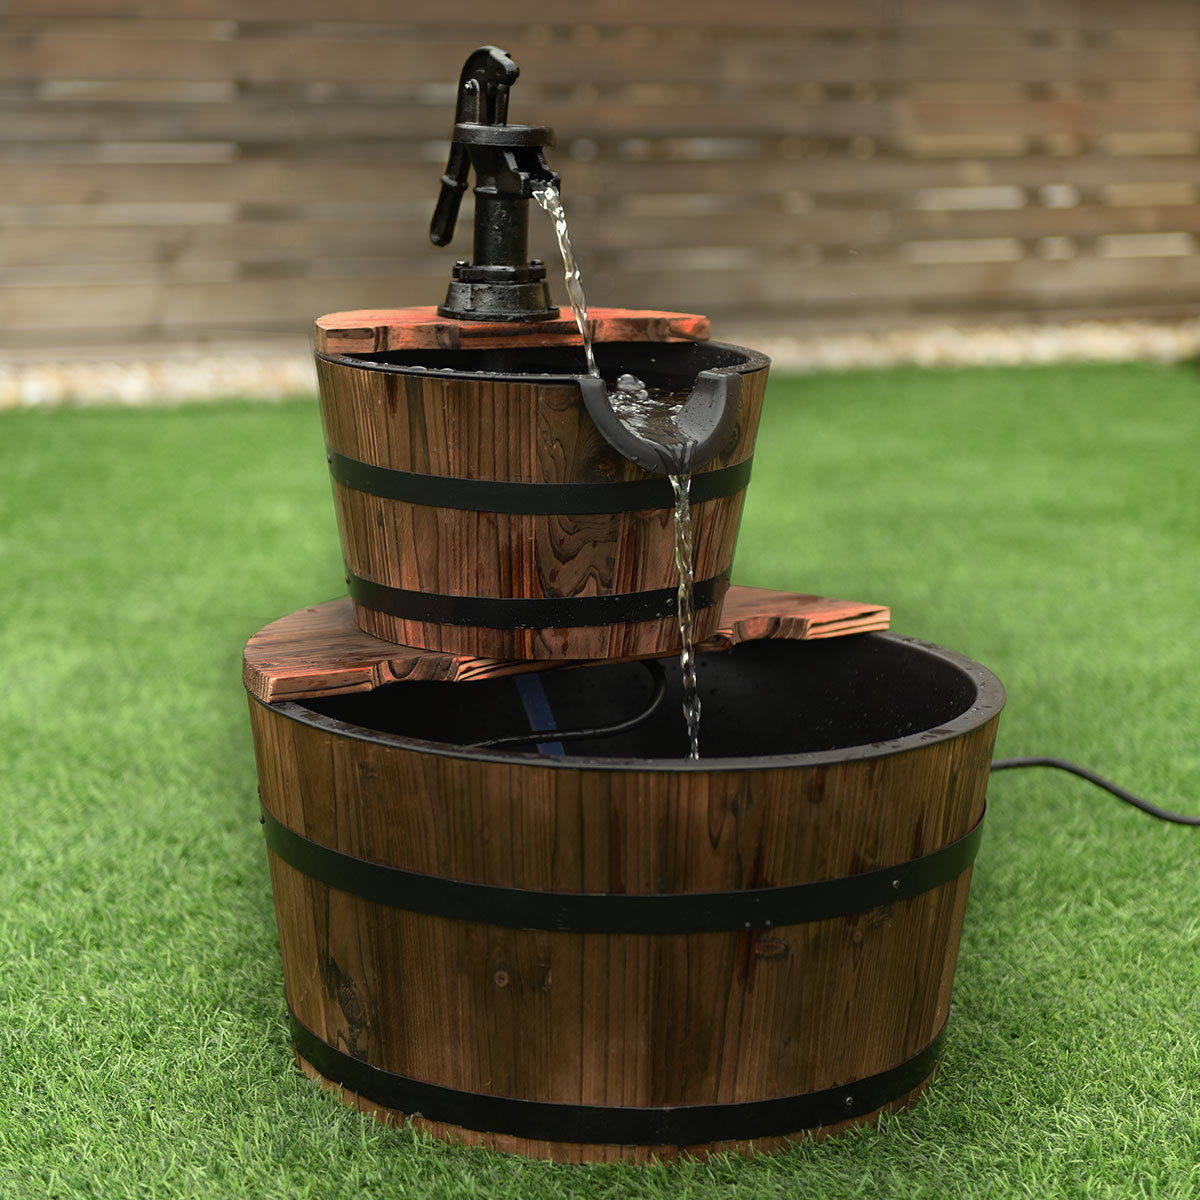 Costway 2 Tier Barrel Waterfall Fountain Barrel Wooden Water Fountain Pump Outdoor Garde